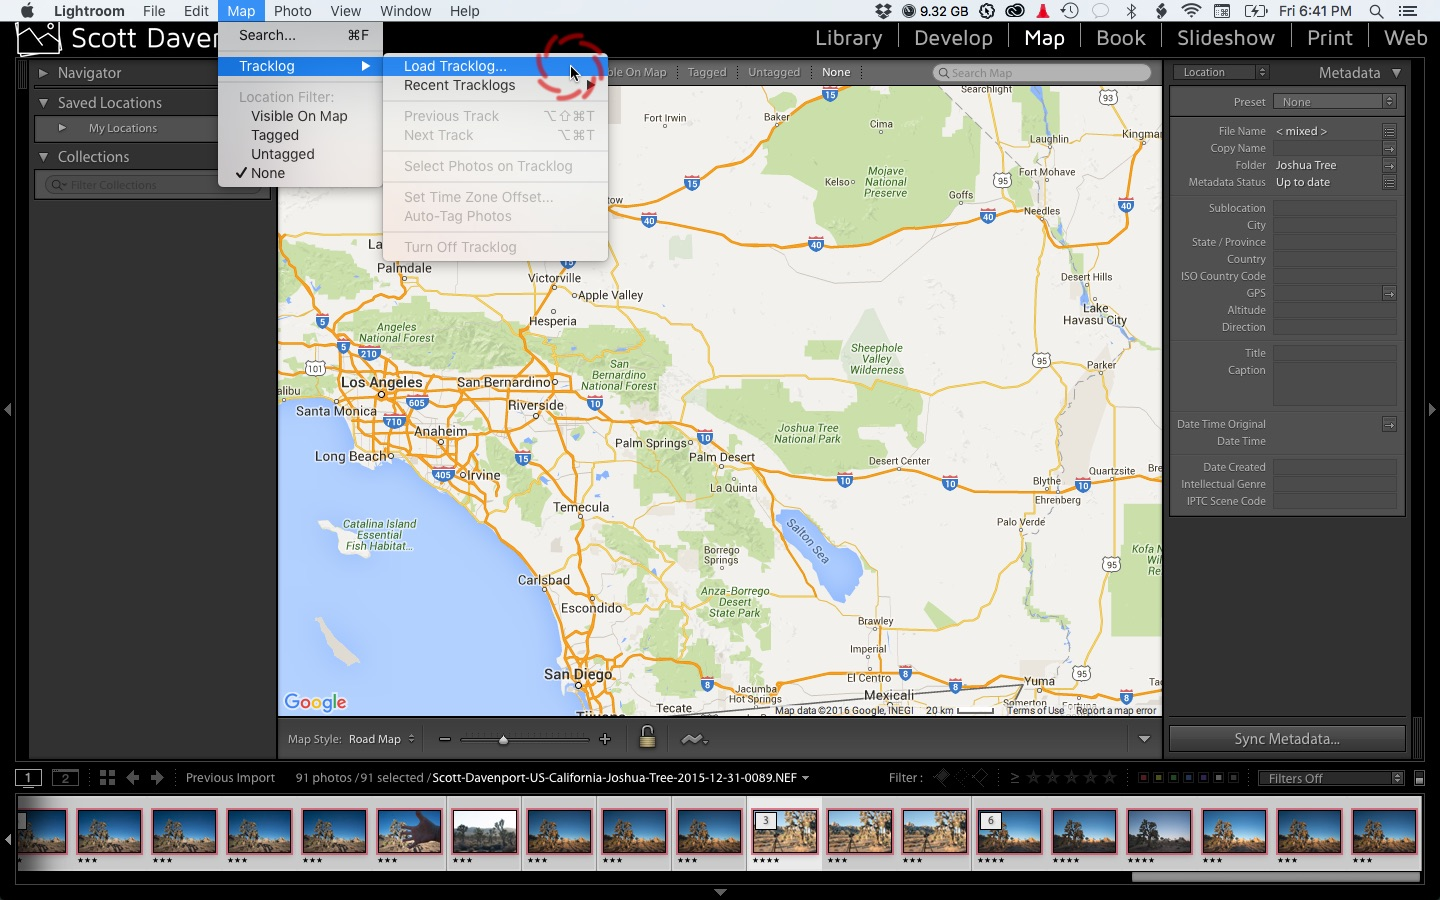 3 Steps To Geotag Photos With GPX Track Logs In Lightroom